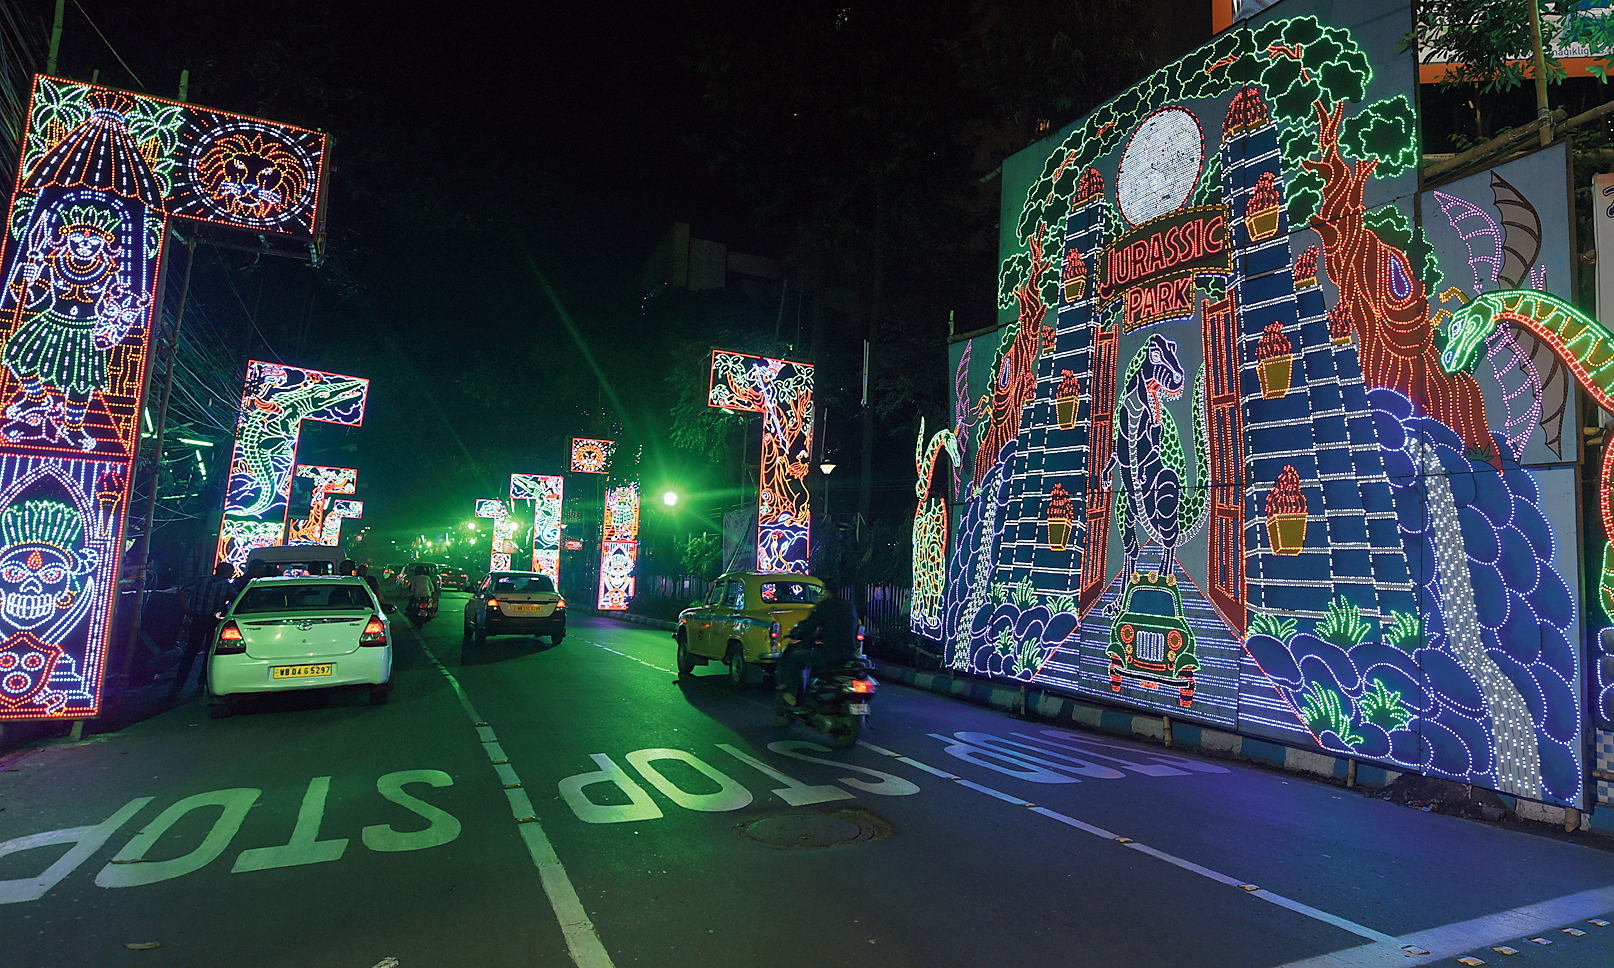 At least 170 people were prosecuted for drink driving on the night of Kali Puja in Calcutta and Salt Lake